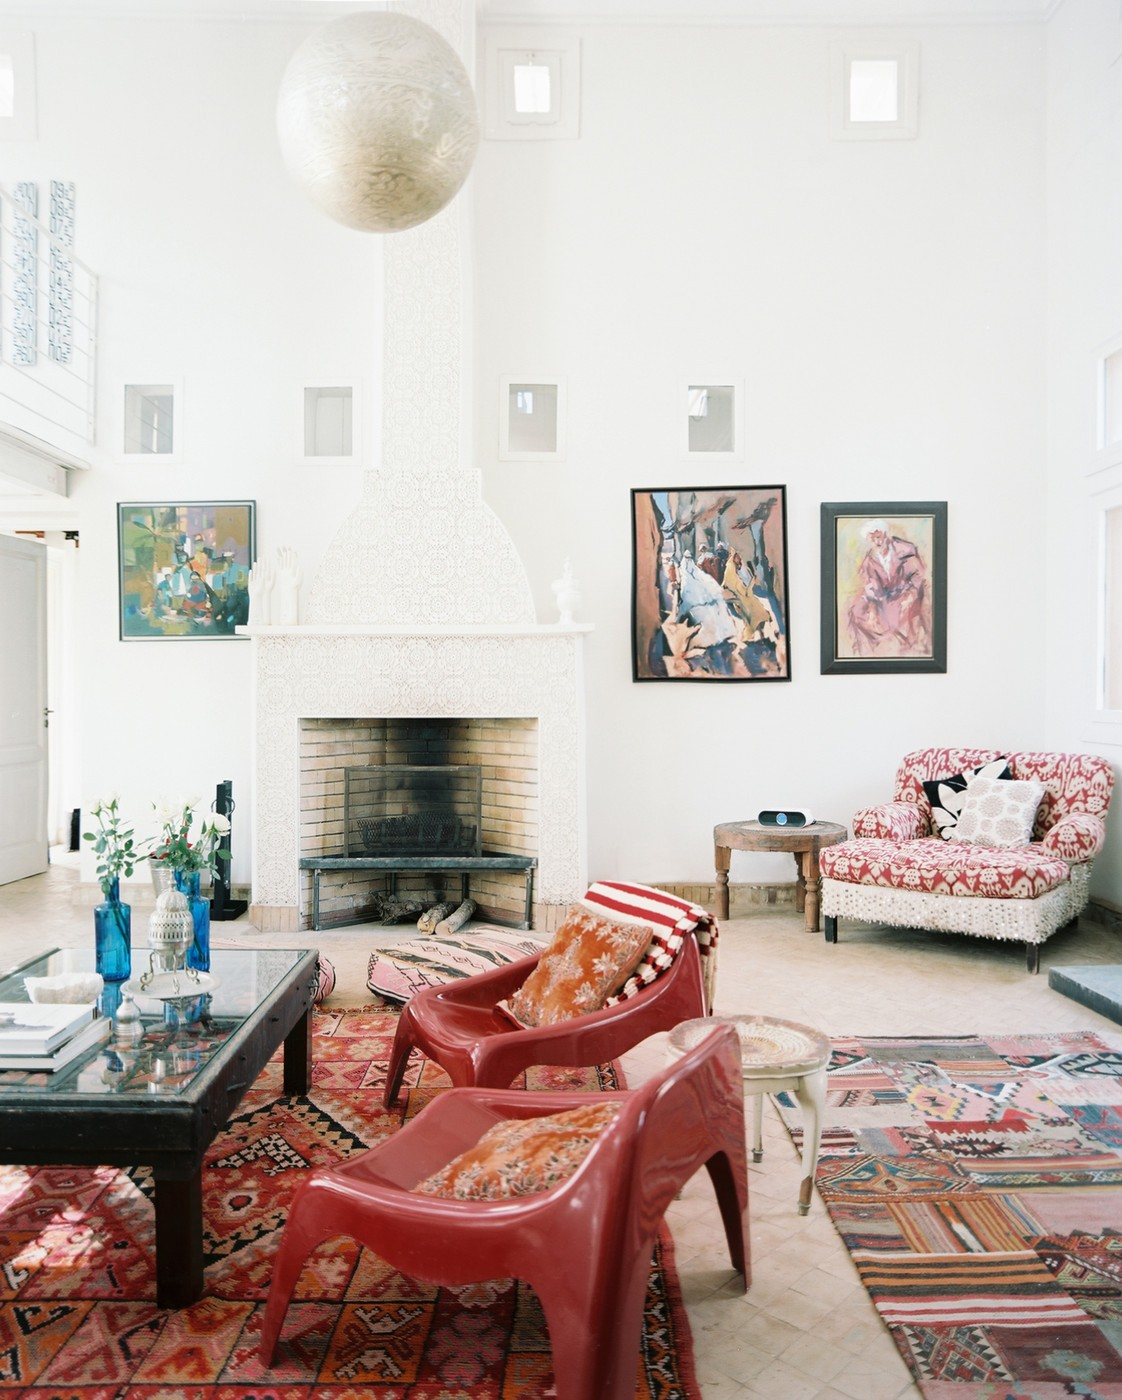 House Envy: A Moroccan Home Tour | lark & linen